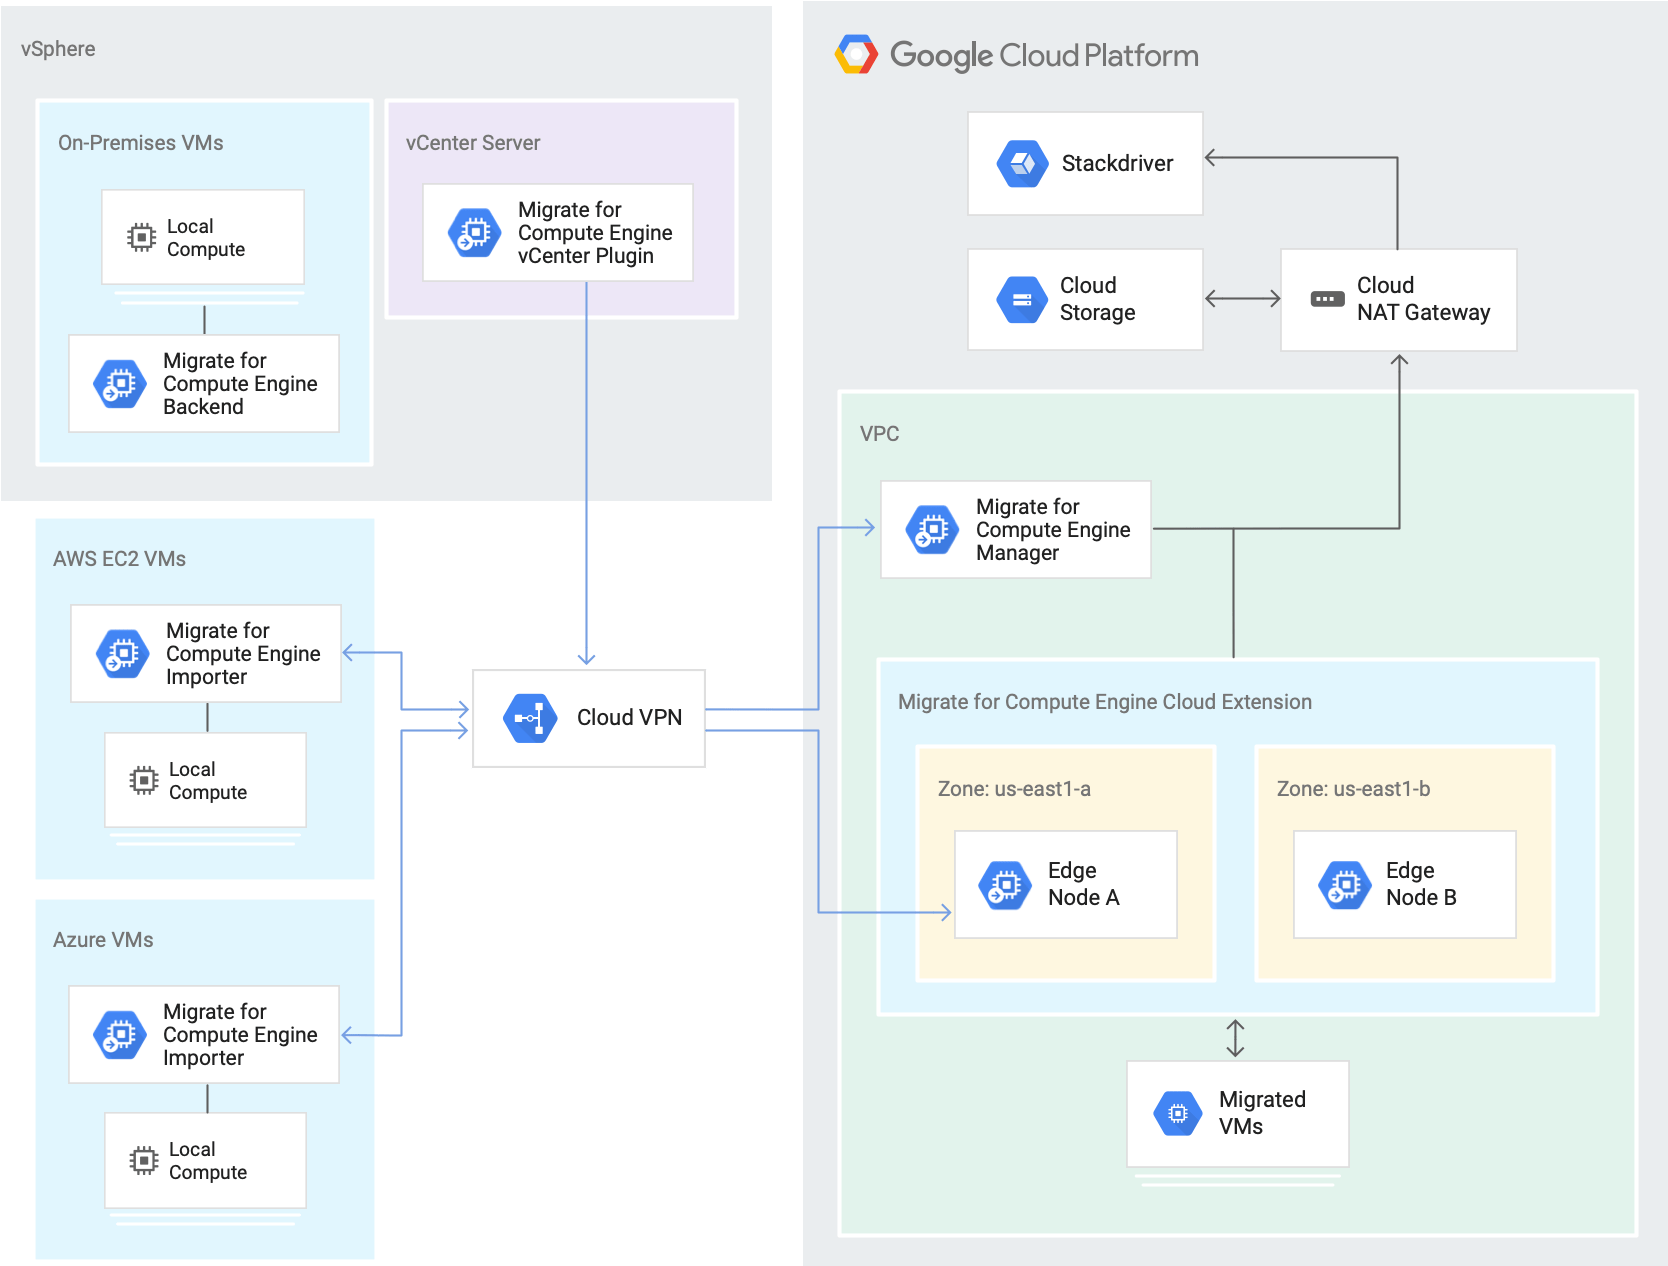 Migrate for Compute Engine Architecture, showing all components of the infrastructure